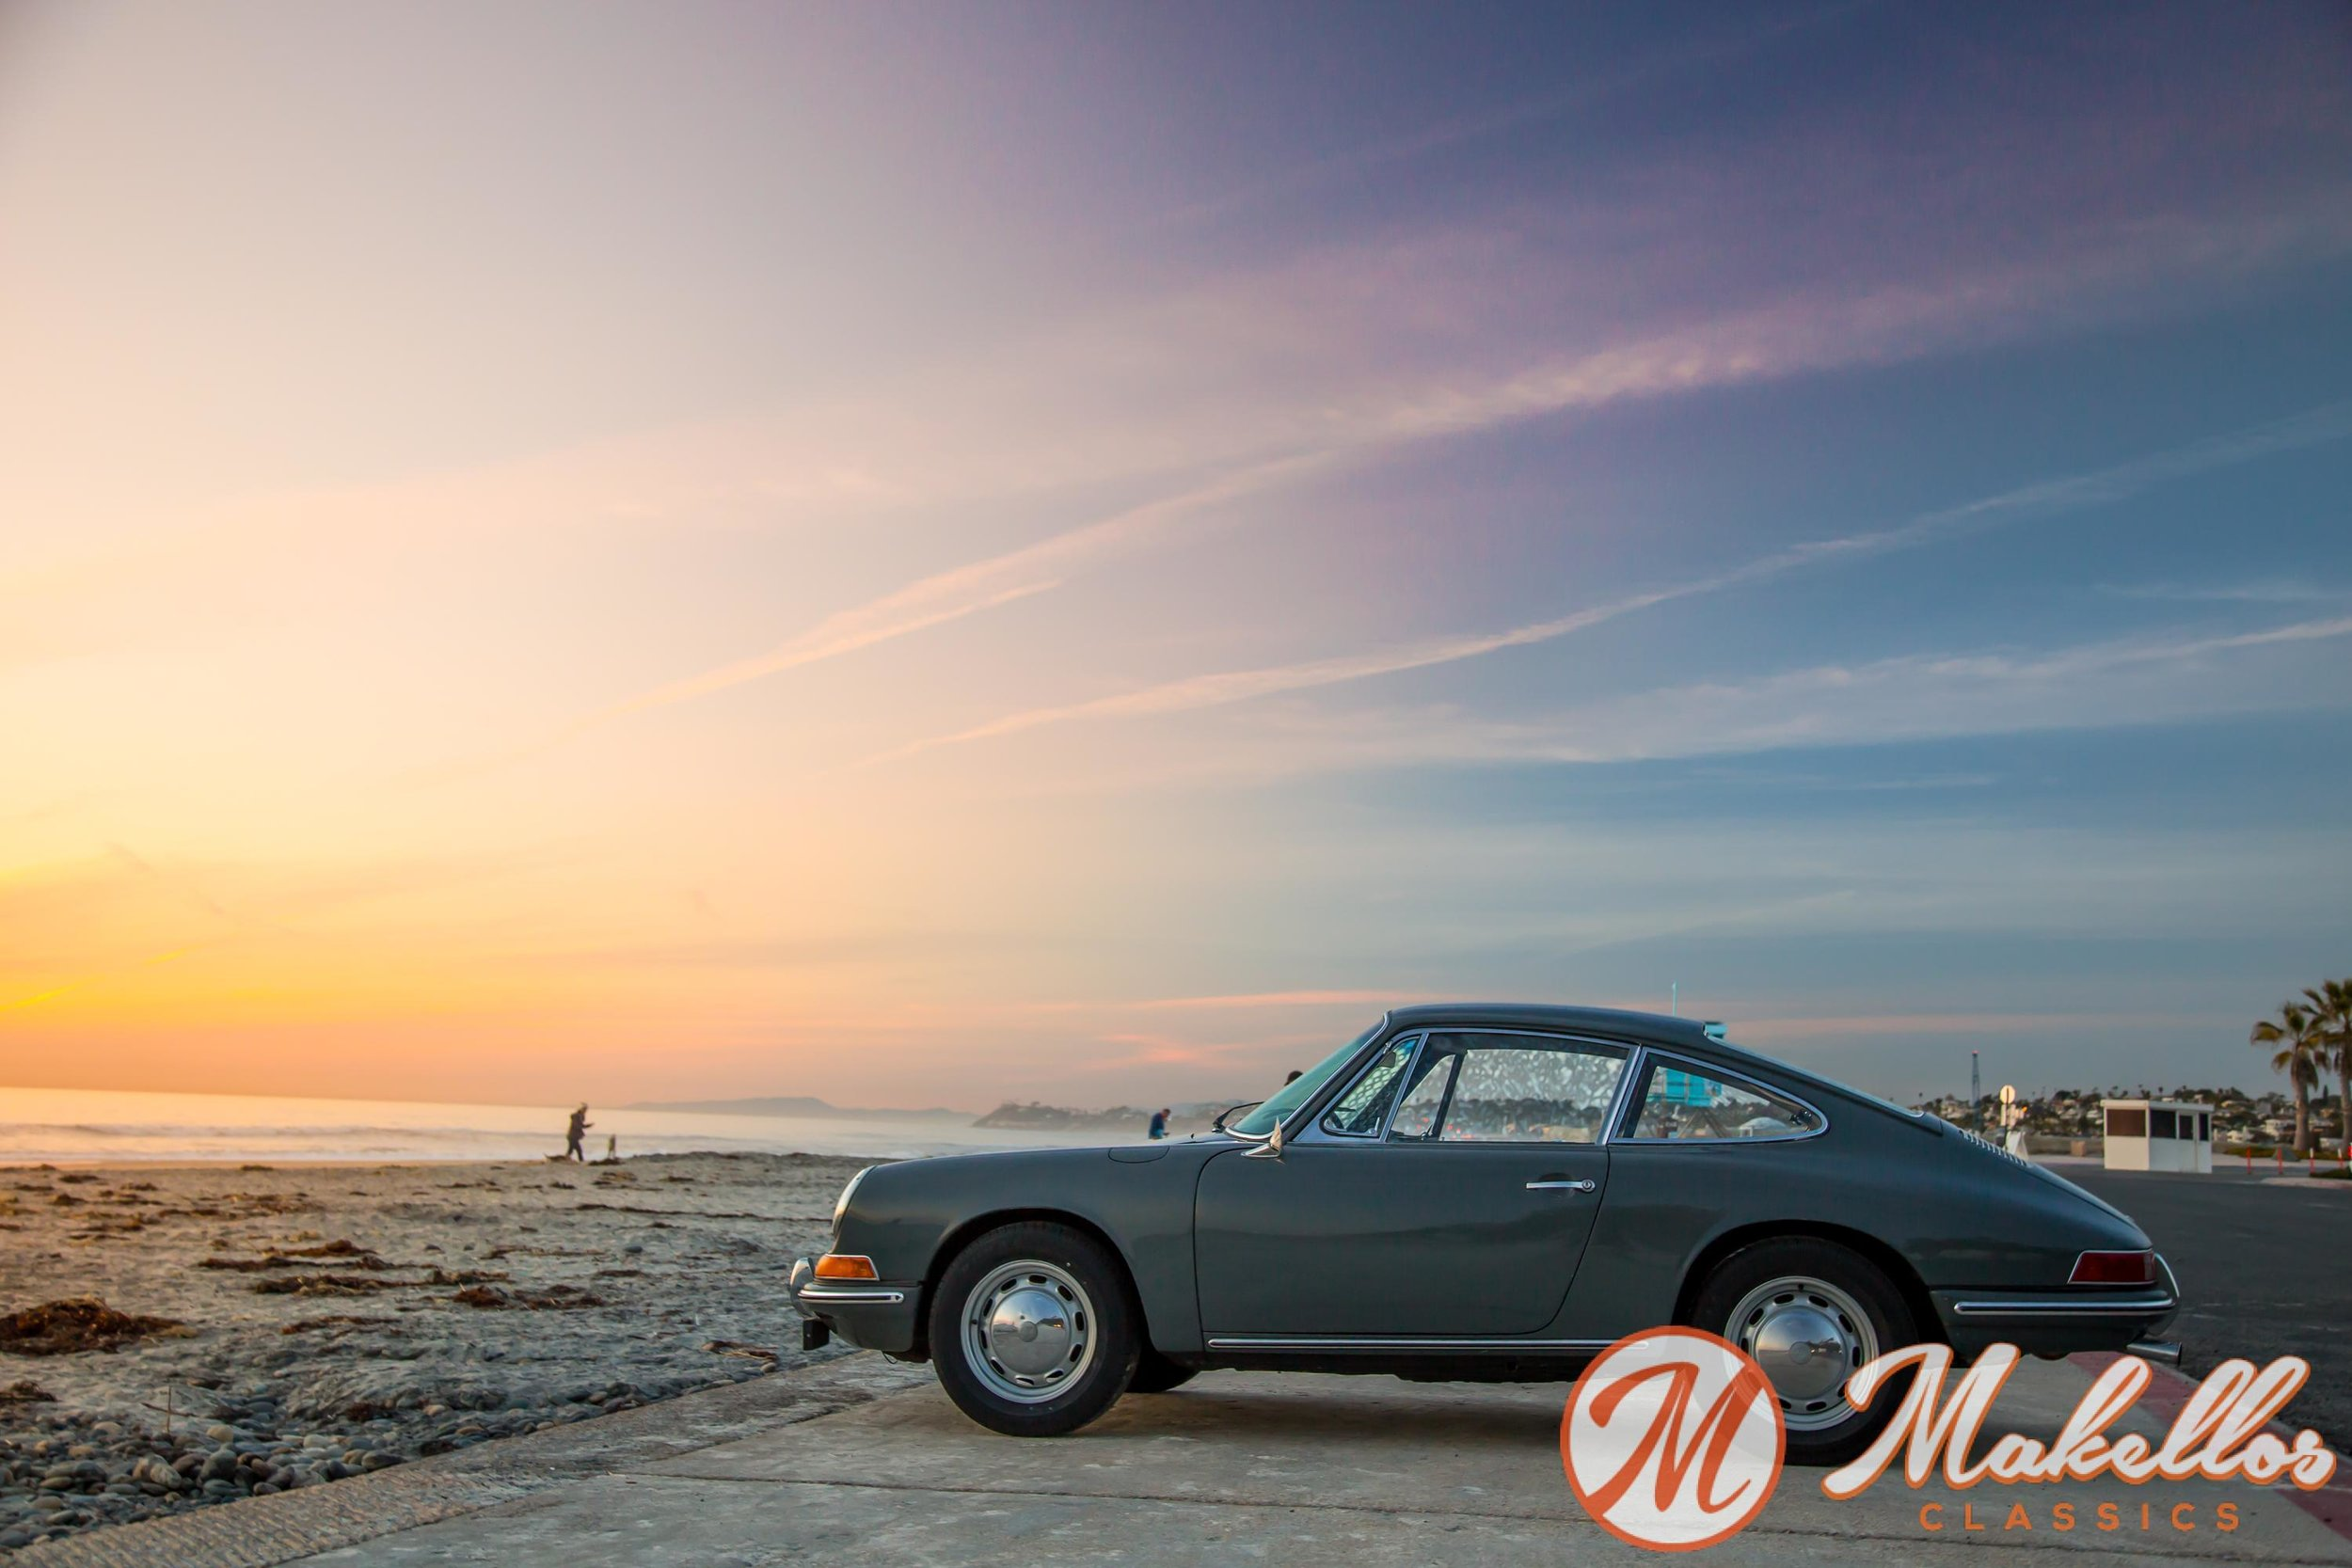 1966-porsche-912-slate-grey-makellos-classics-drivers-side-profile-beach.jpg